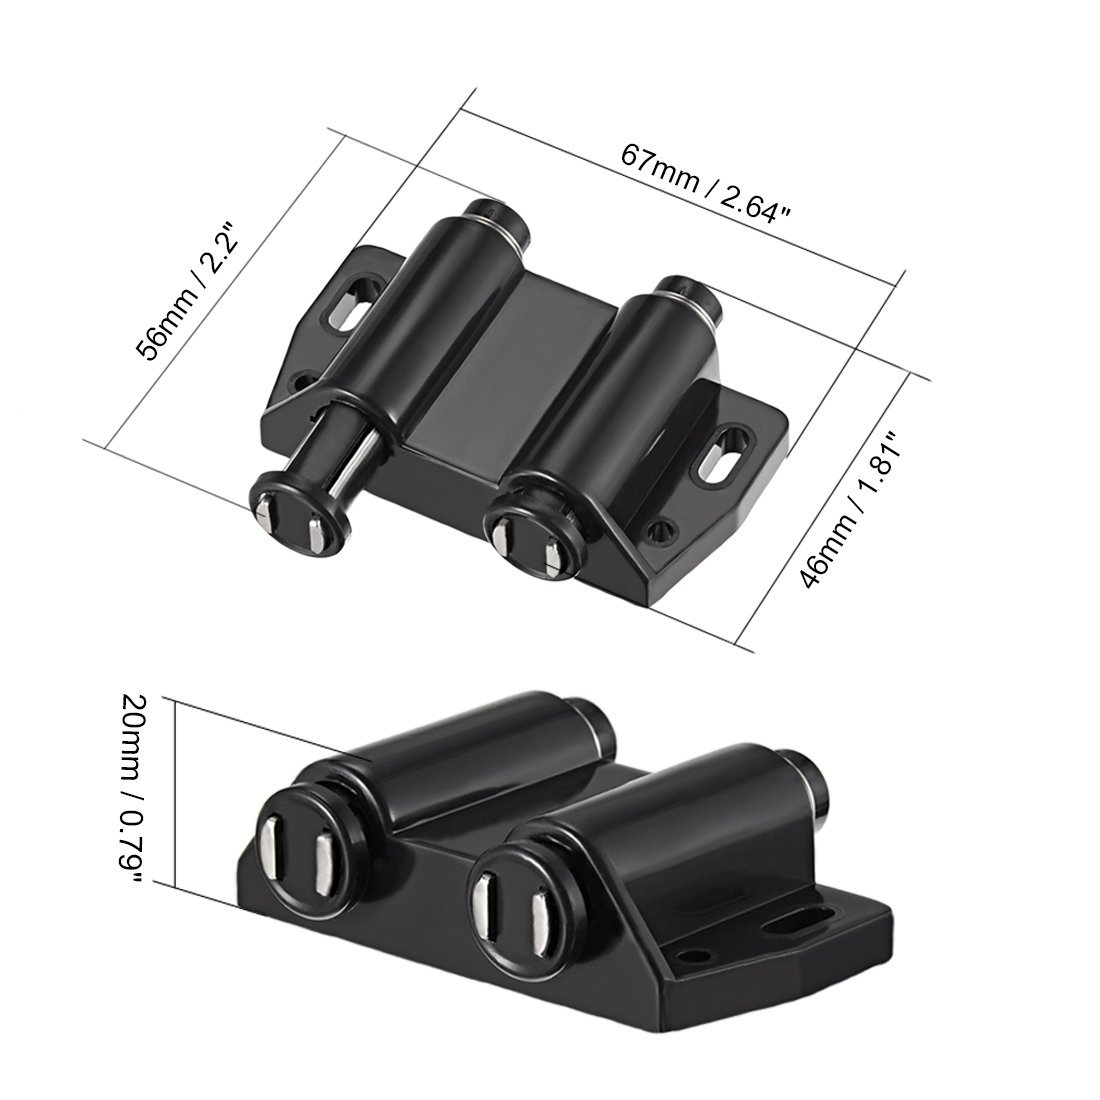 uxcell Double Magnetic Touch Catch Latch Plastic PE Black for Cabinet Door Shutter 5Pcs by uxcell (Image #1)